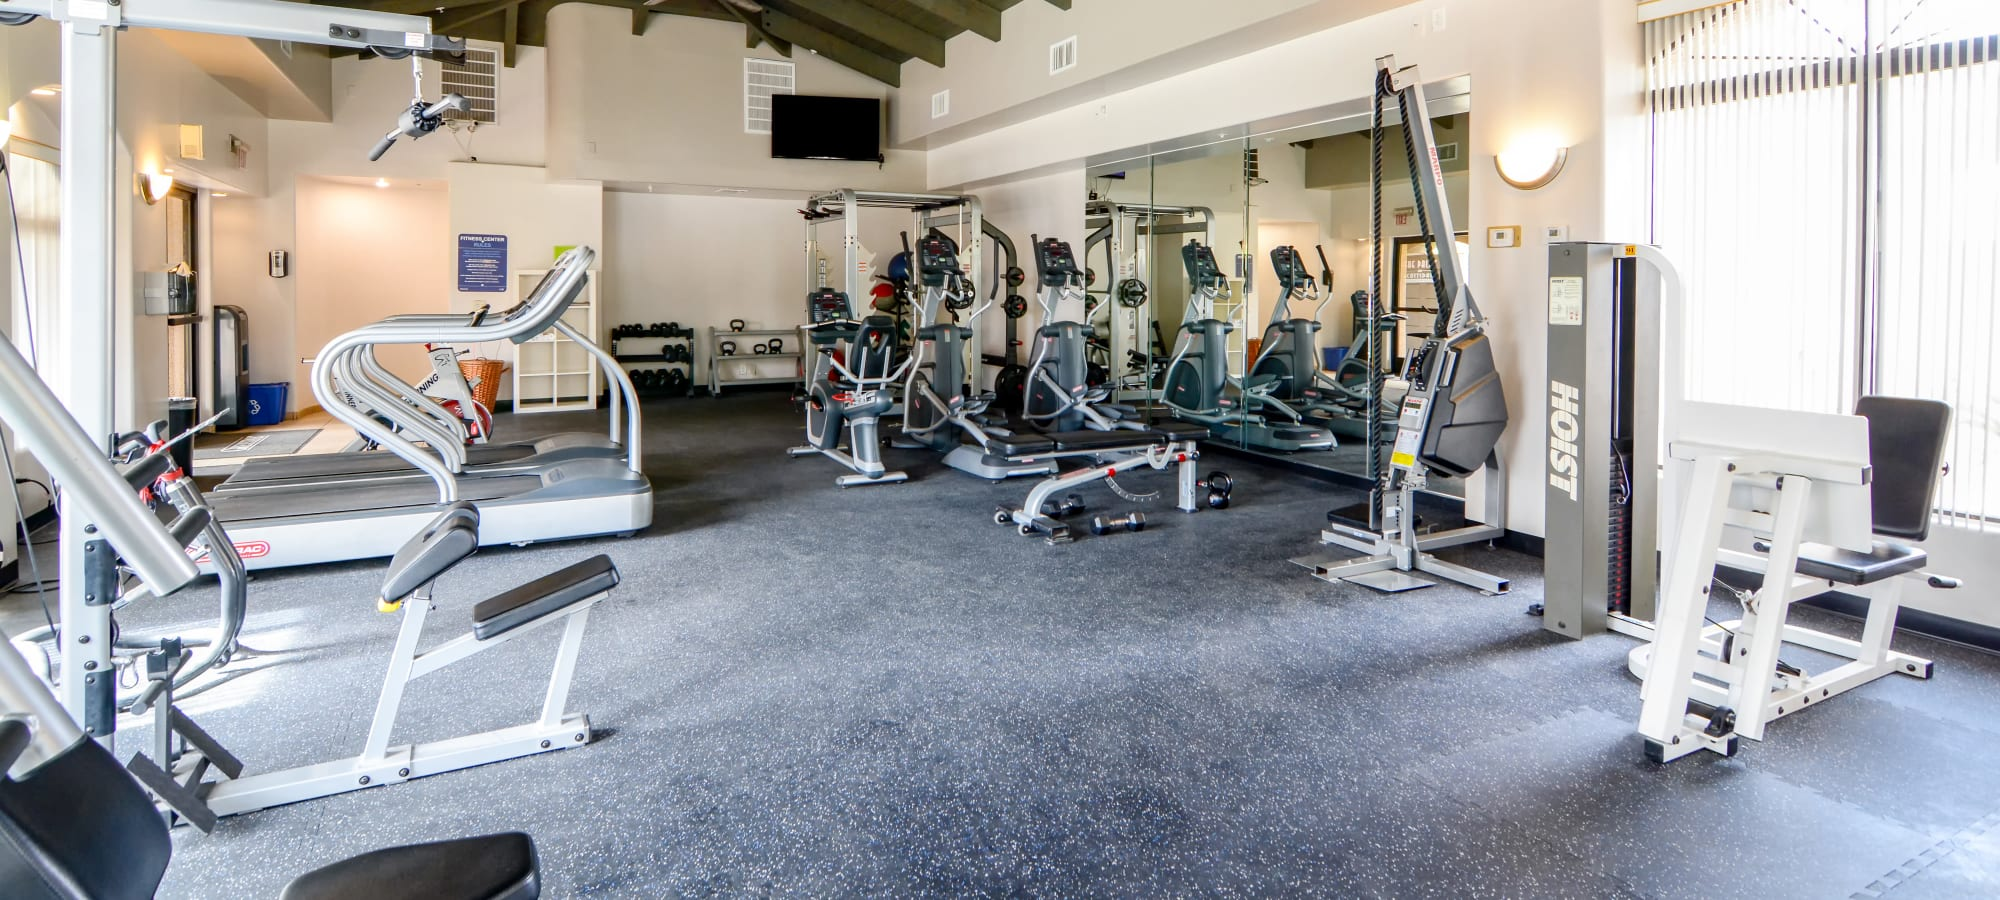 Fitness center with TV at The Palms on Scottsdale in Tempe, Arizona